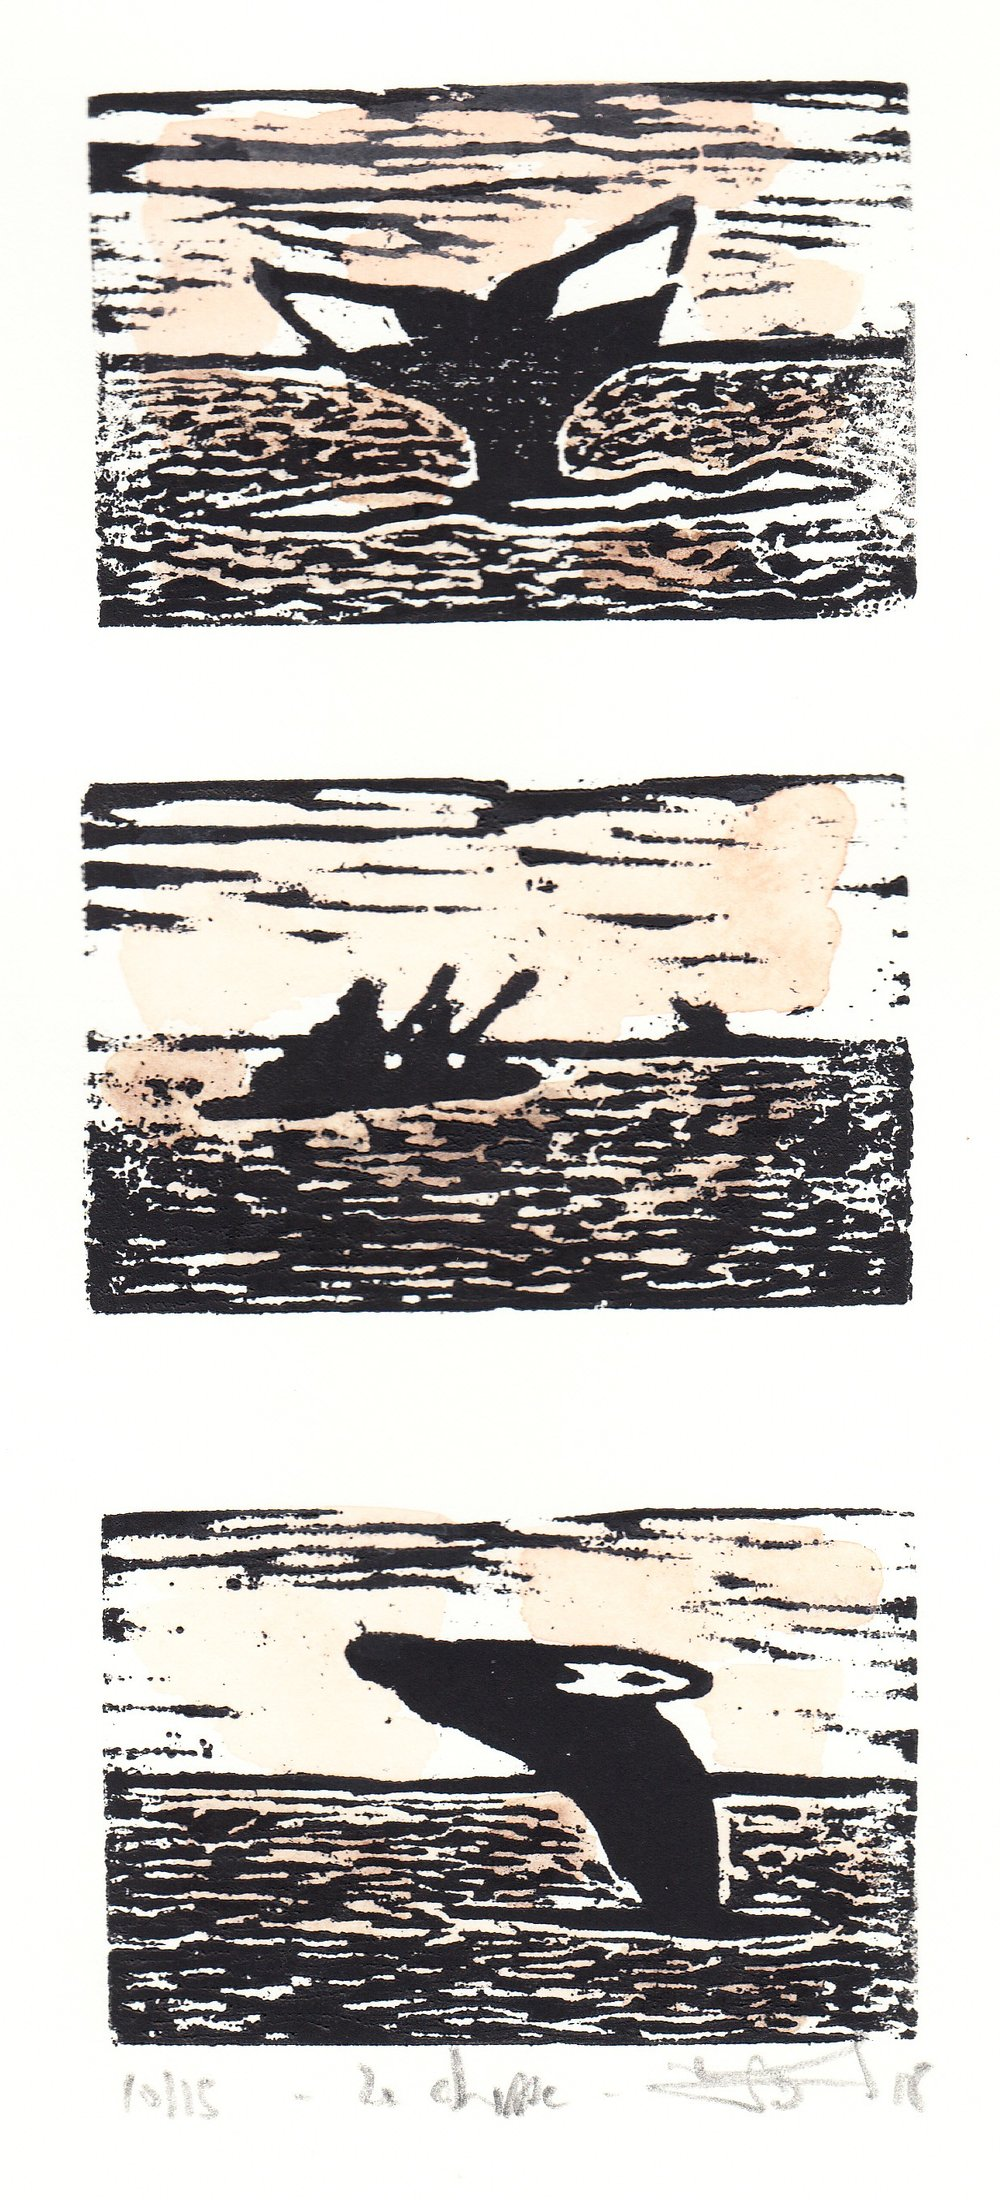 "La Chasse  (11/15), woodcut and watercolor, 10 1/4"" x 5 1/2"" sheet size, $80"